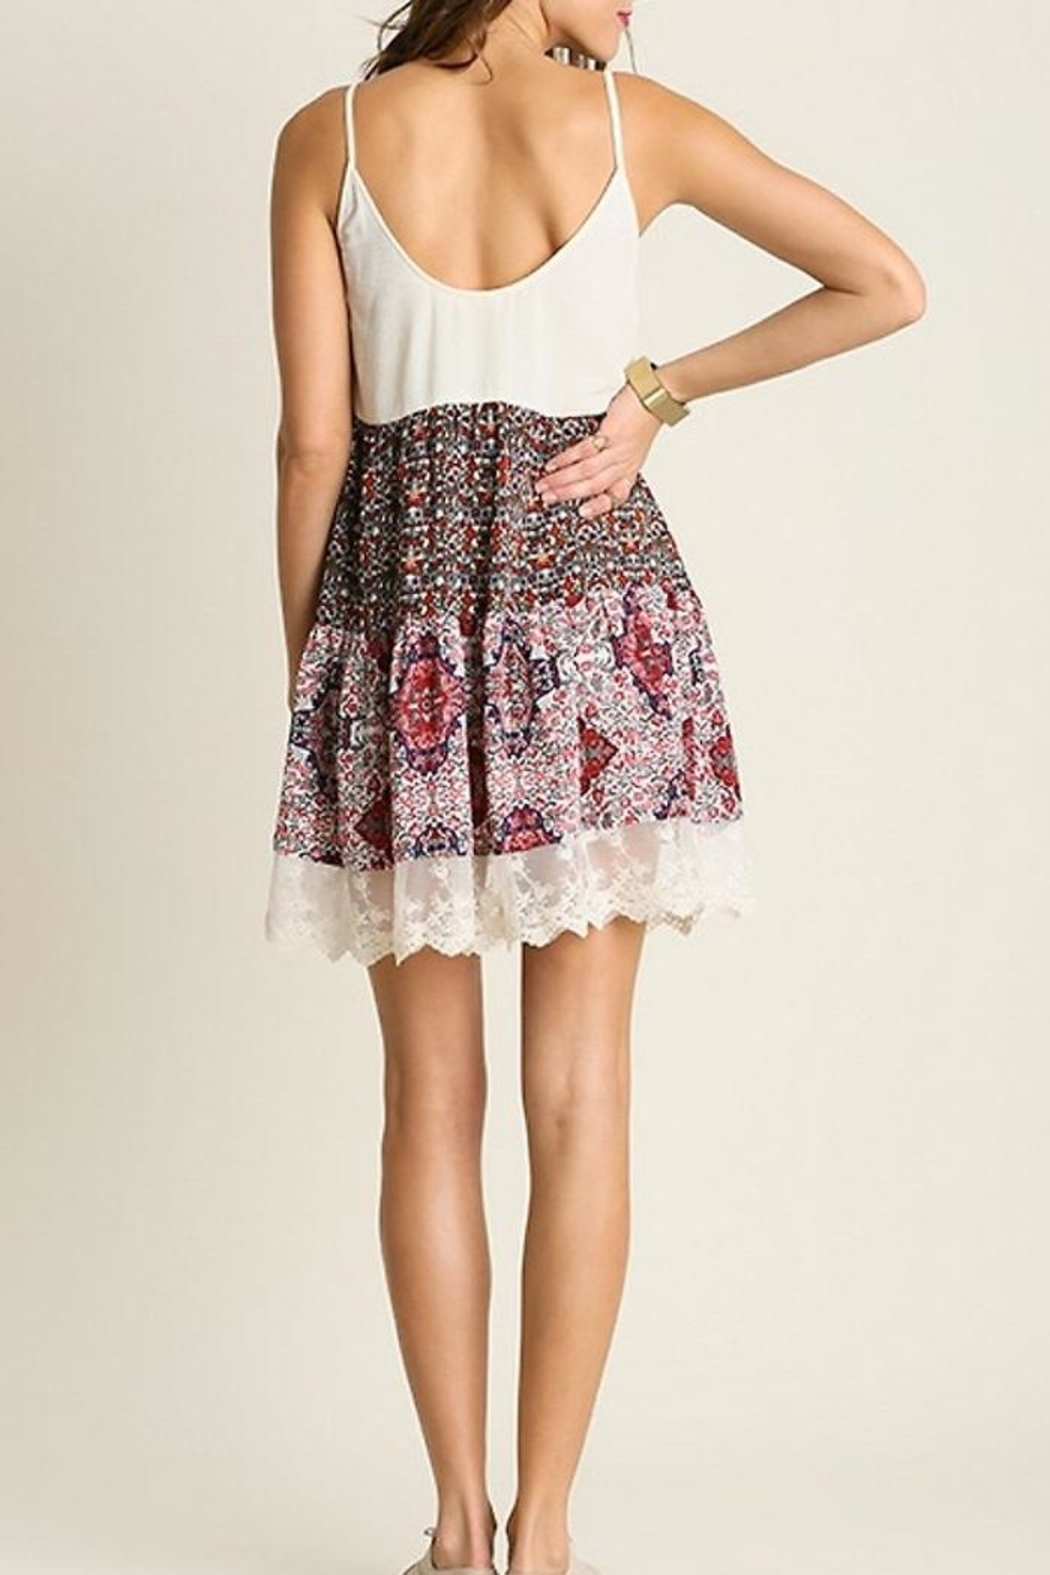 People Outfitter Country Print Dresses - Front Full Image